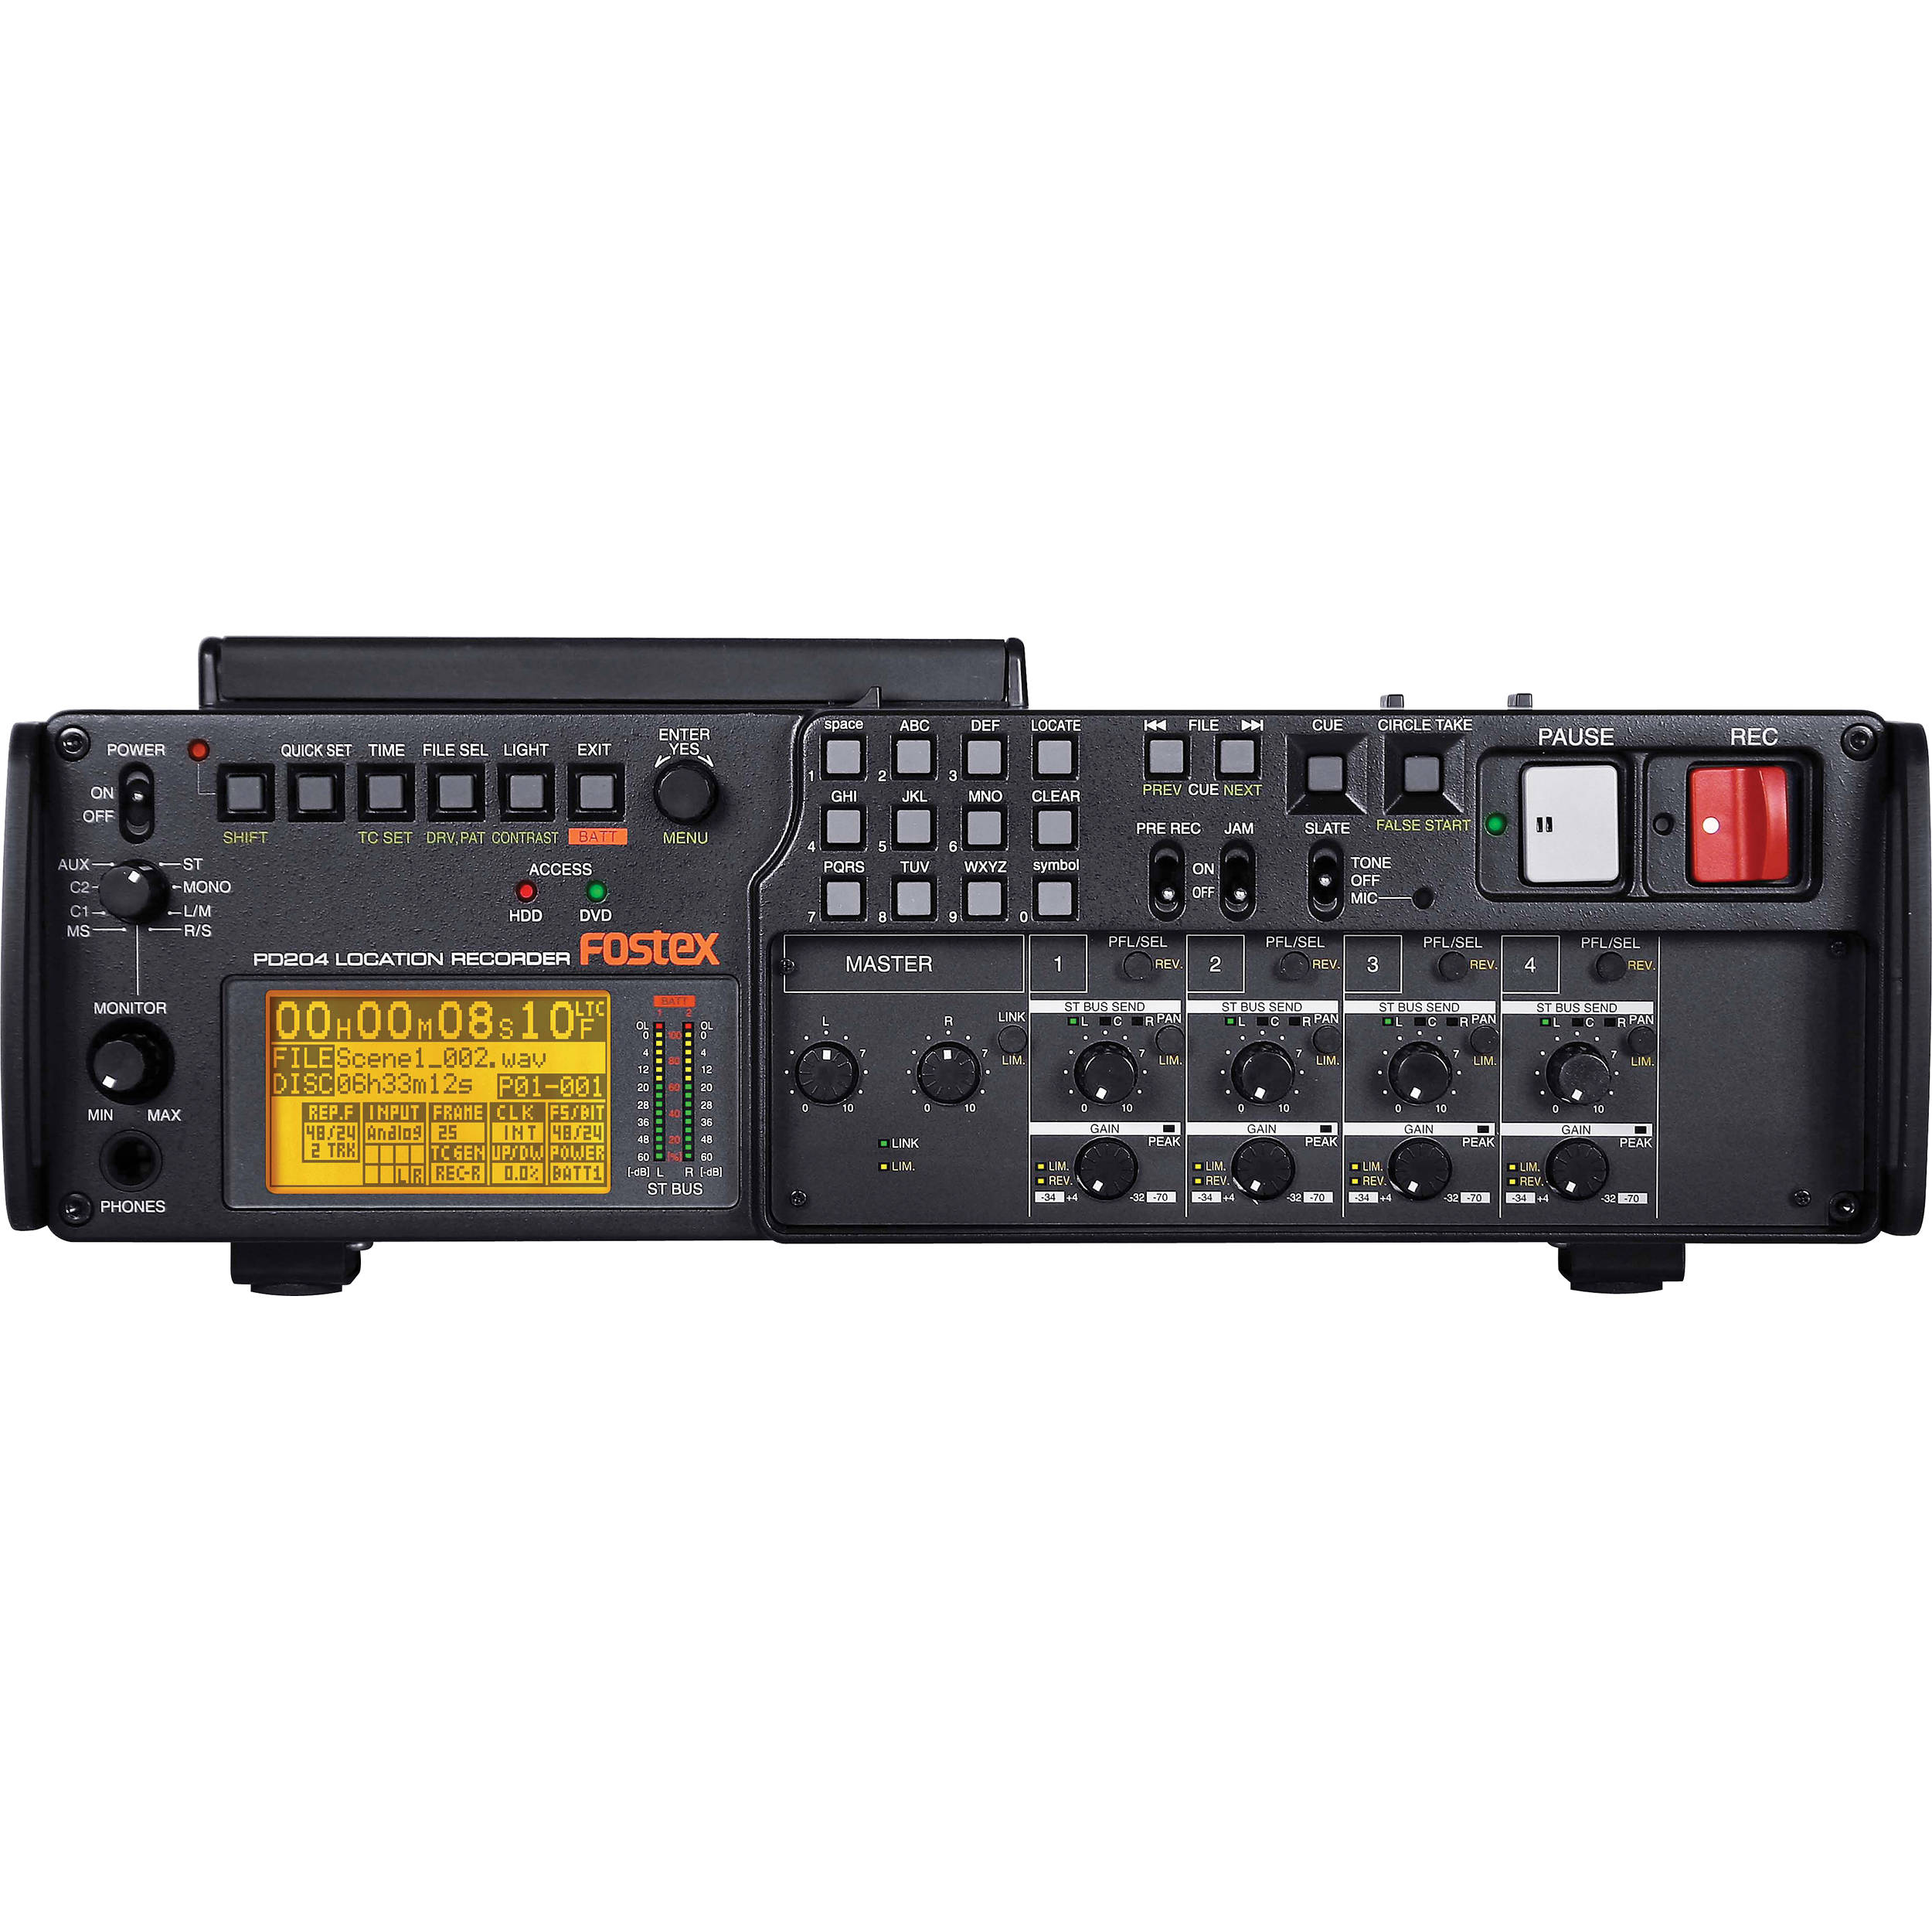 Fostex PD204 Professional DVD/HD Location Audio Recorder